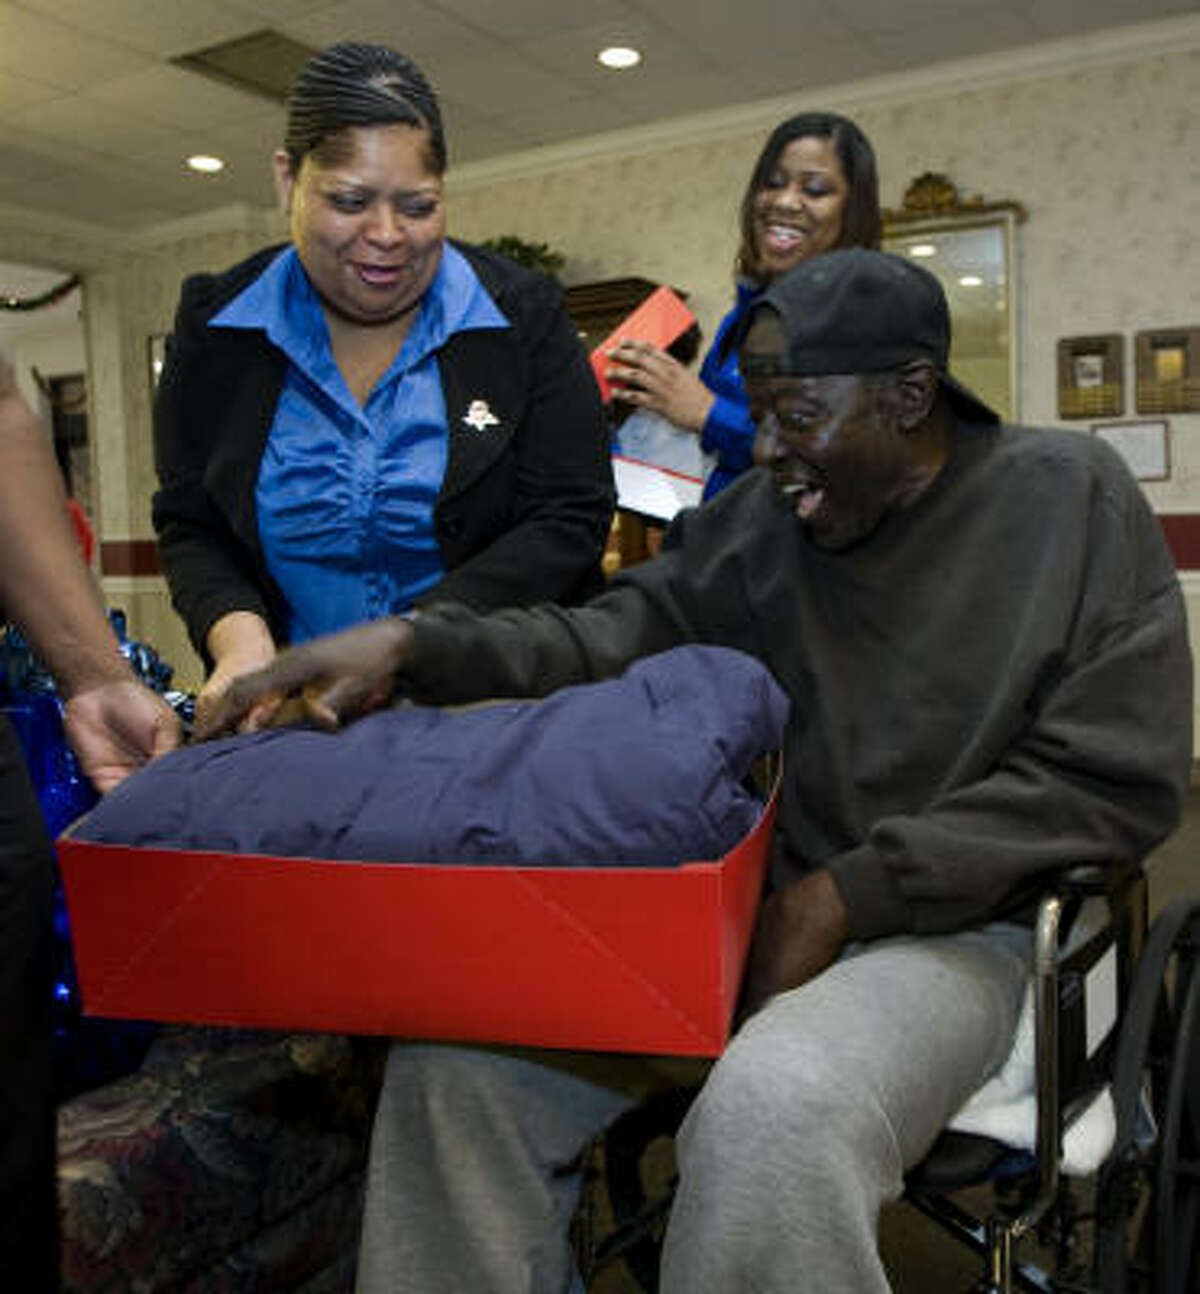 Samuel Reed, one of about 1,400 adult wards of the state in Harris County, is excited to receive a coat from Vanessa Shippard, left, and Shanna Battle on Thursday.